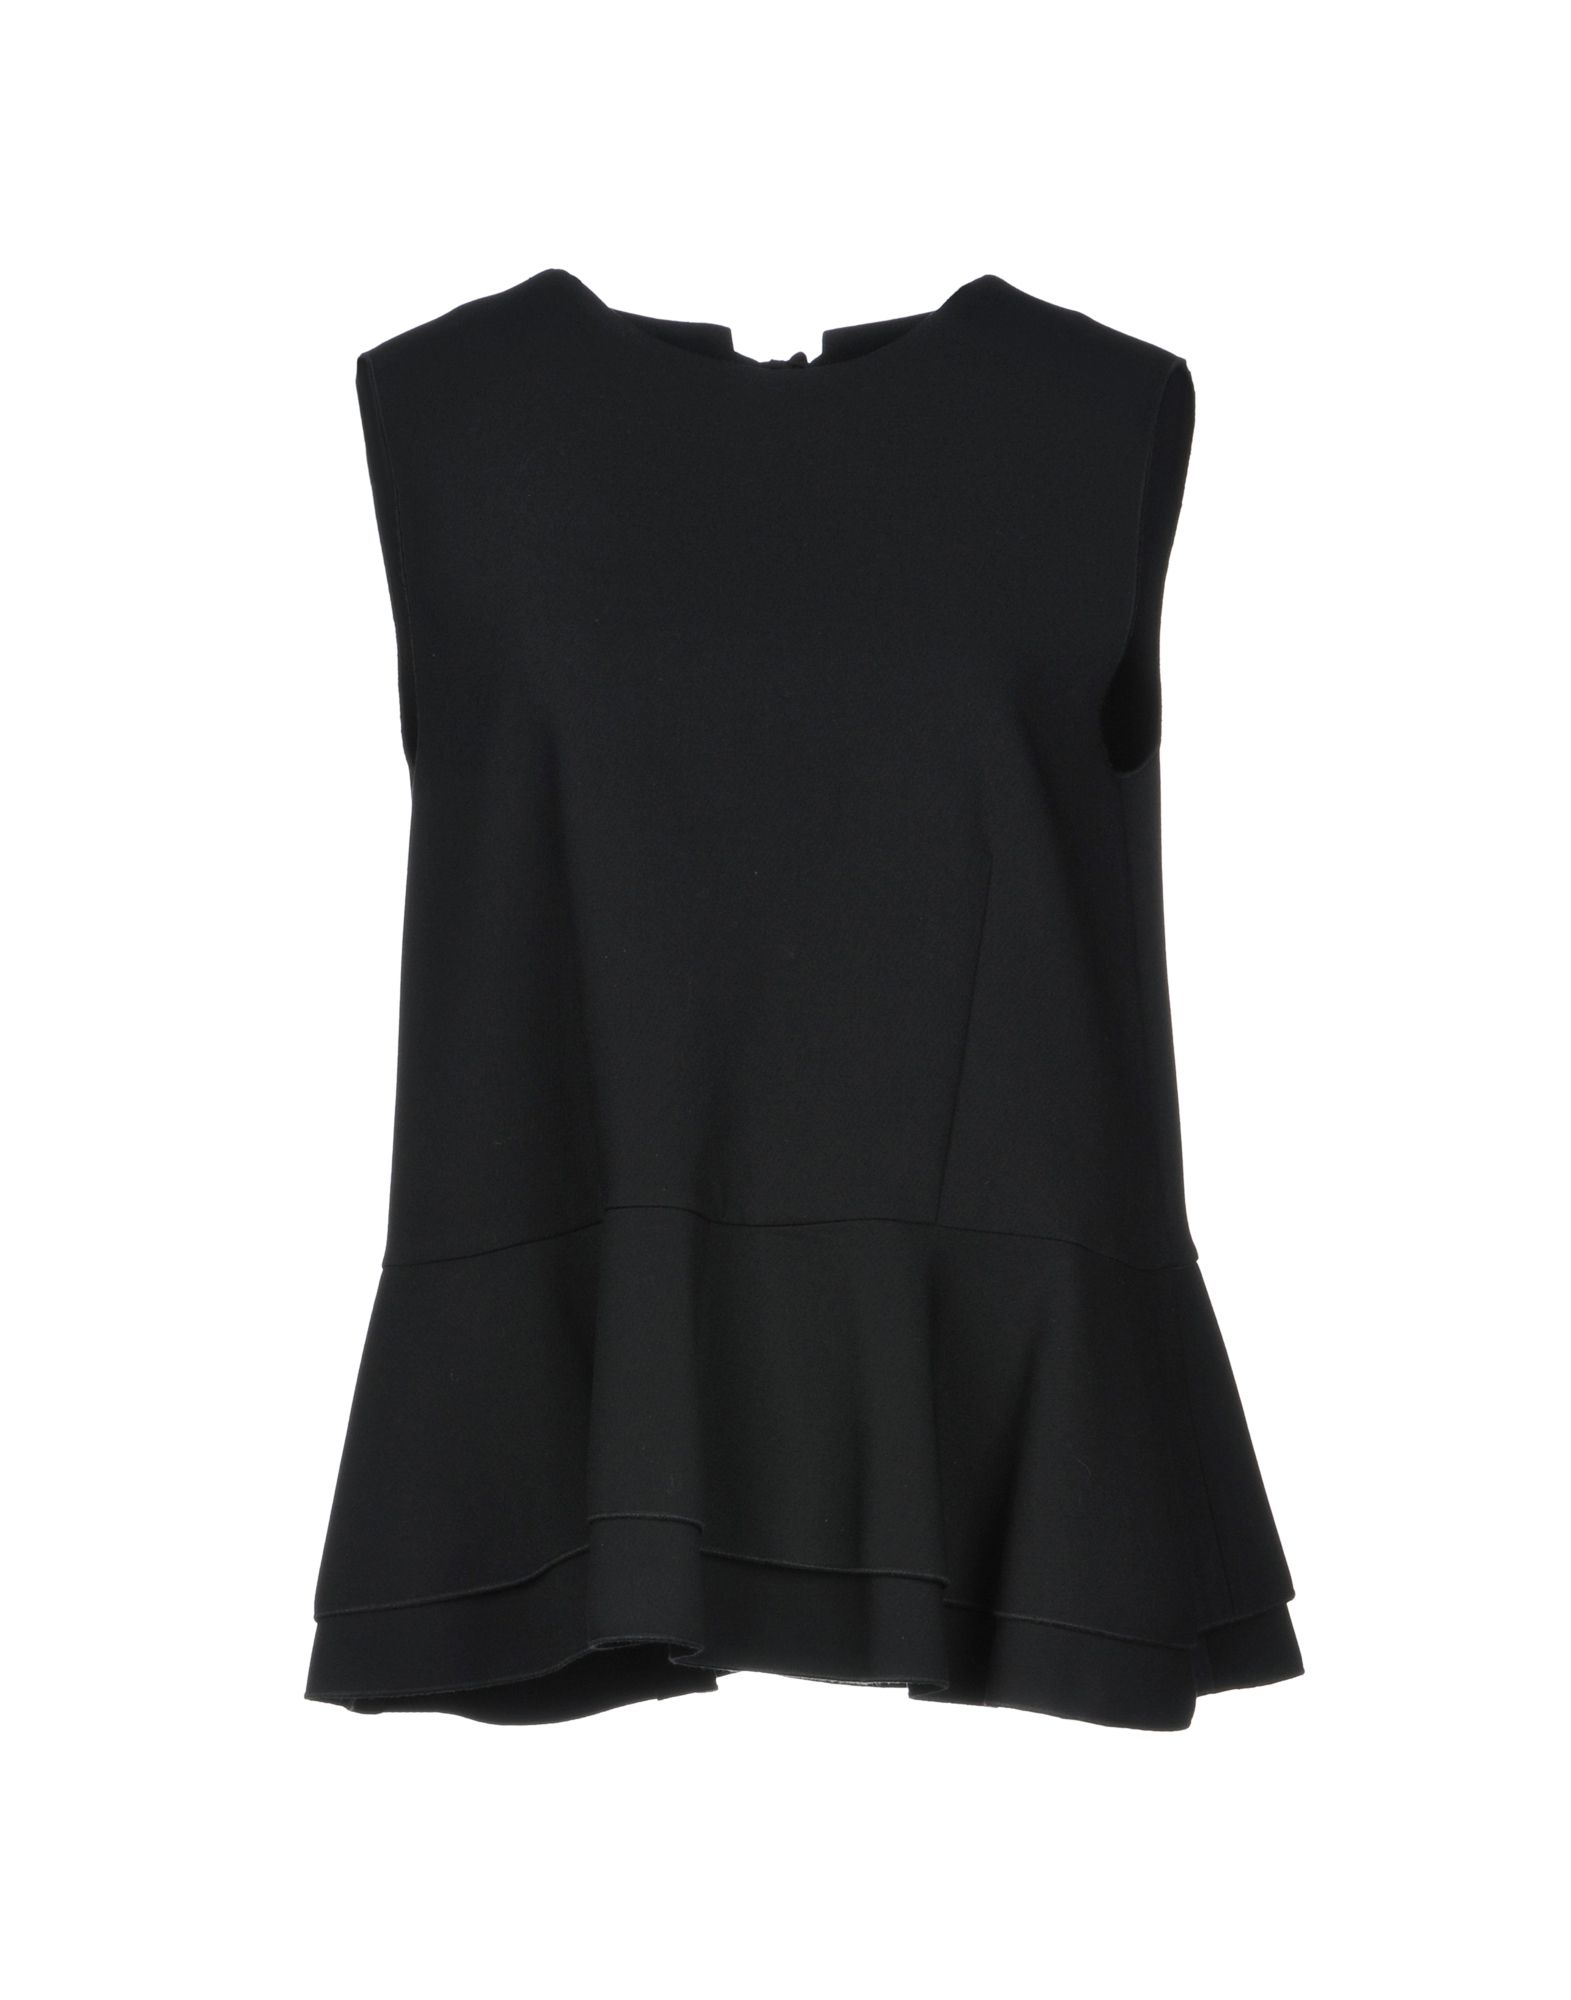 Top Jucca Donna - Acquista online su lcncTDUOH